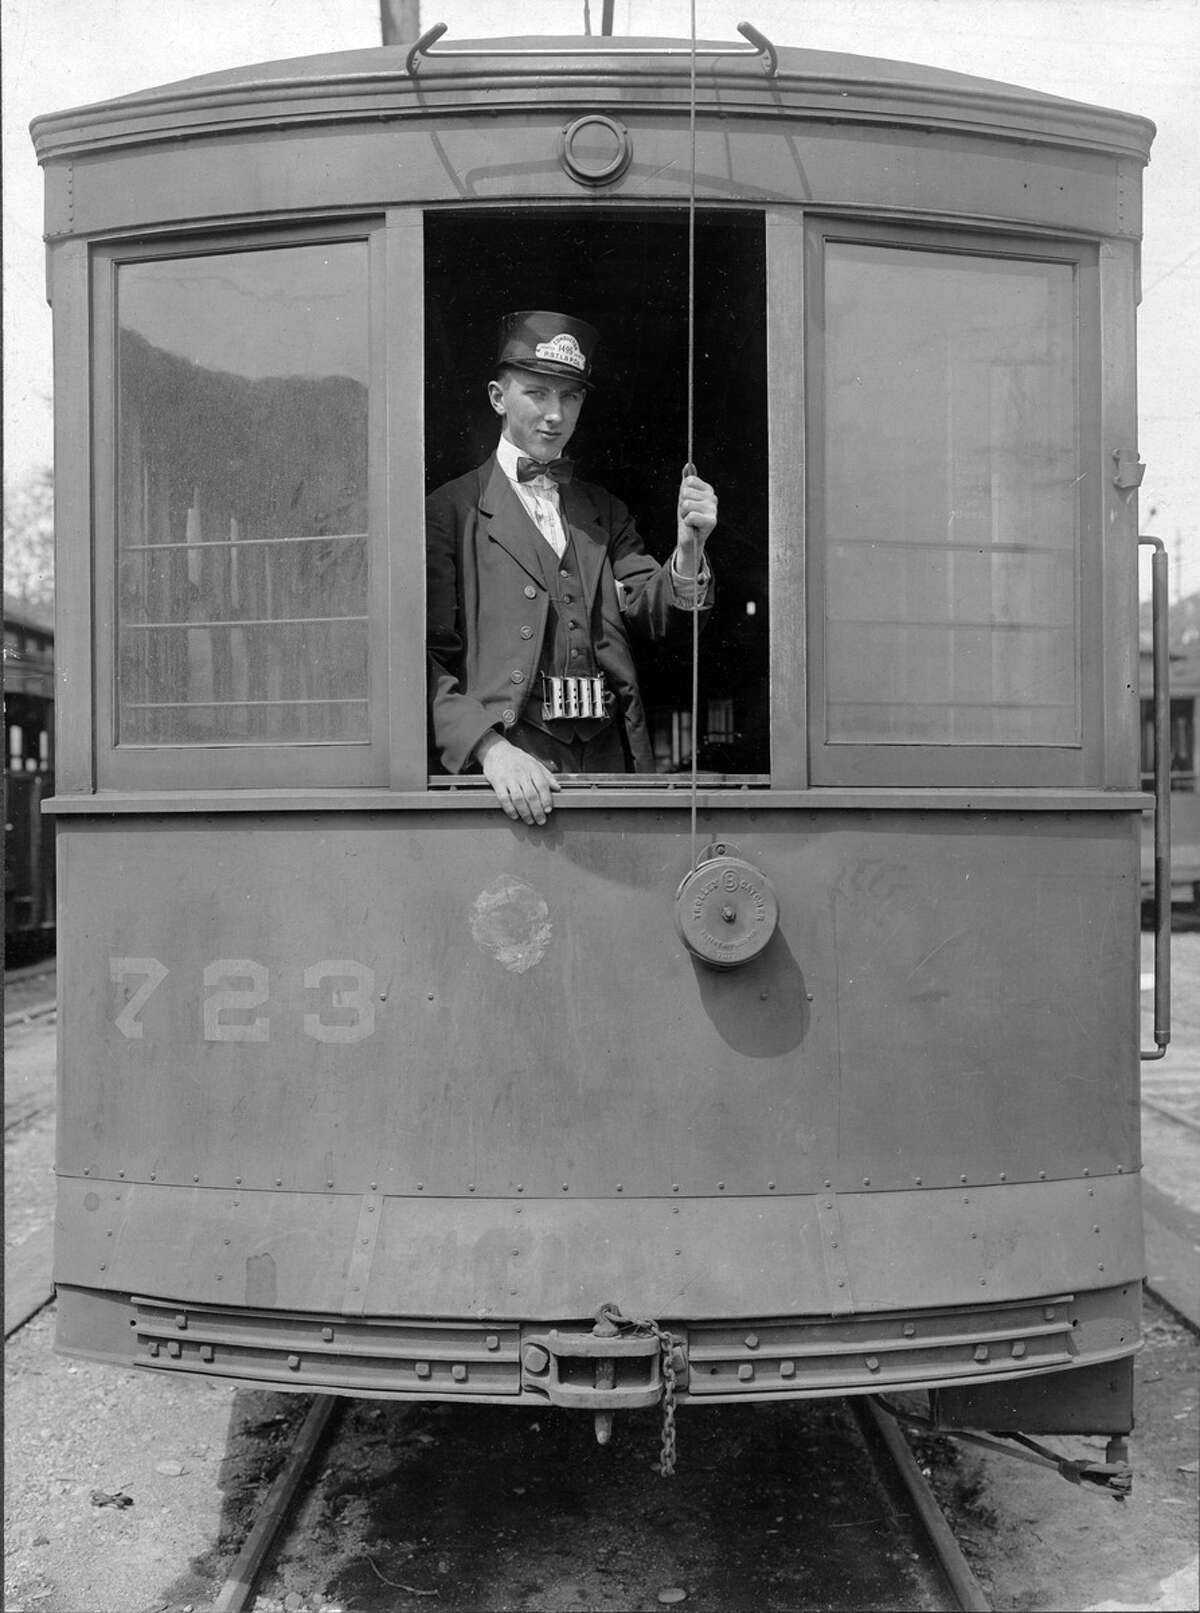 Arthur H. Vagts, conductor, on Wallingford streetcar, 1918. Courtesy of the Seattle Municipal Archives Item 78274.